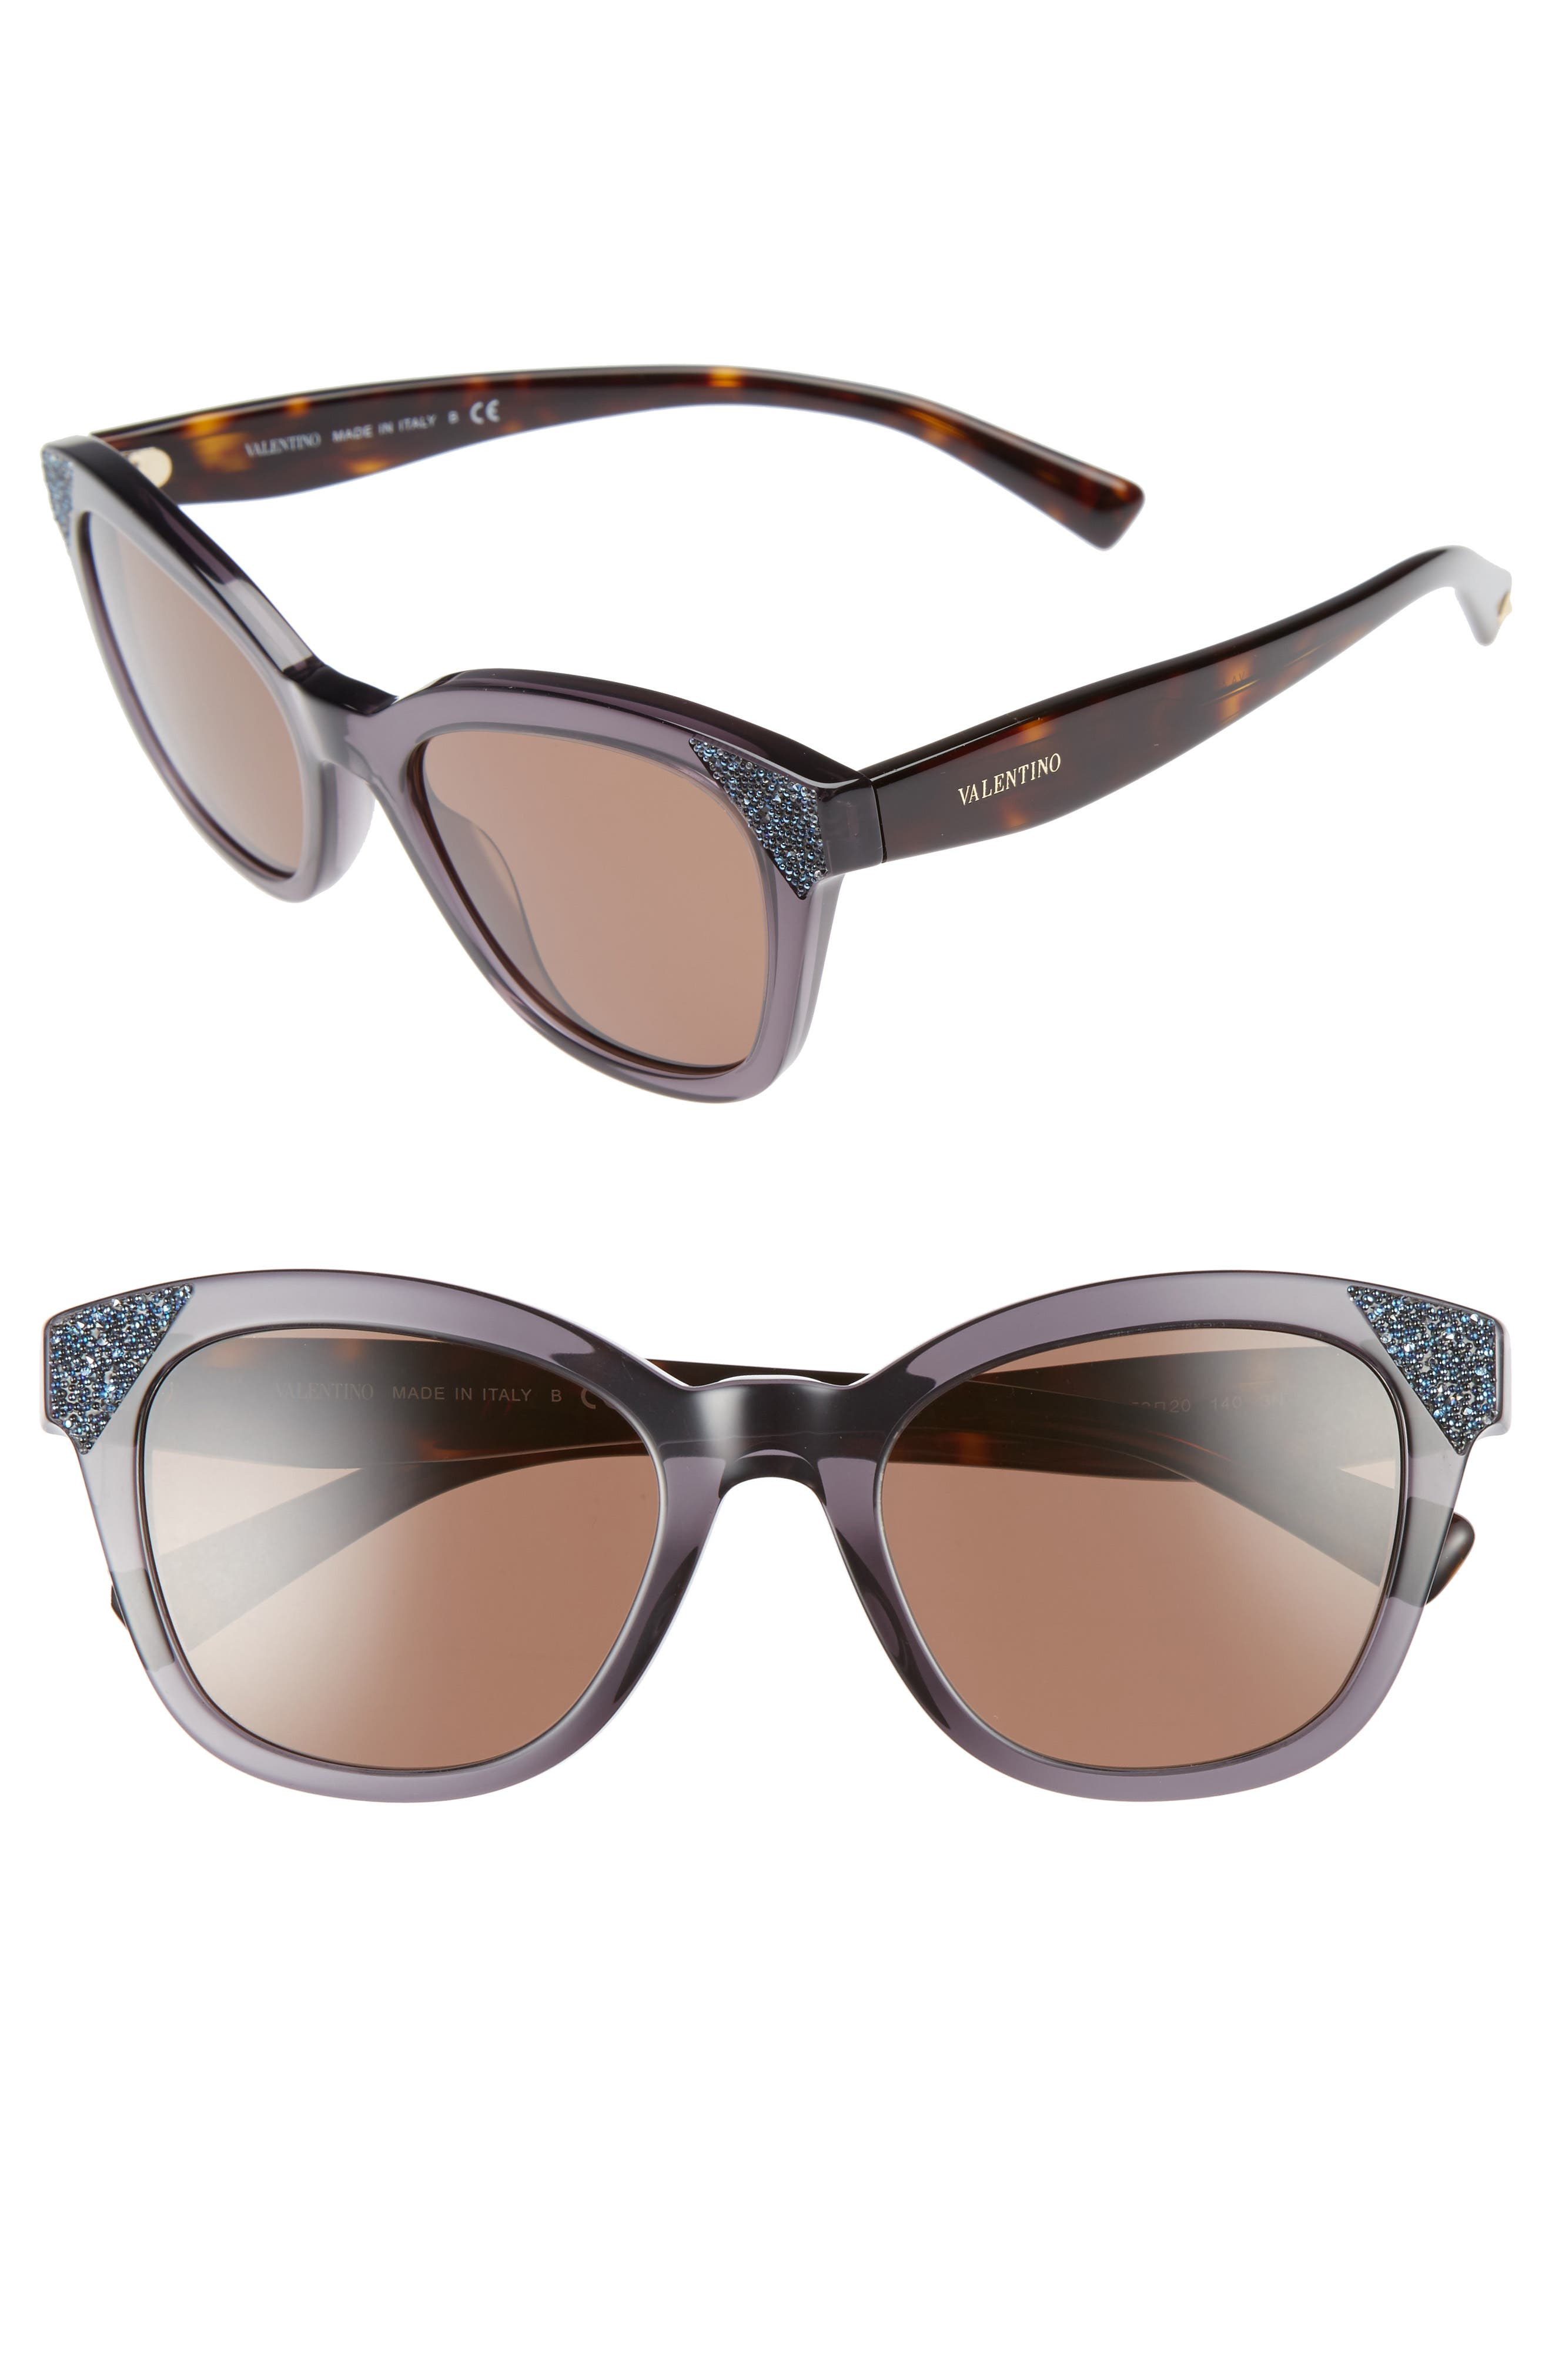 Main Image - Valentino 52mm Cat Eye Sunglasses